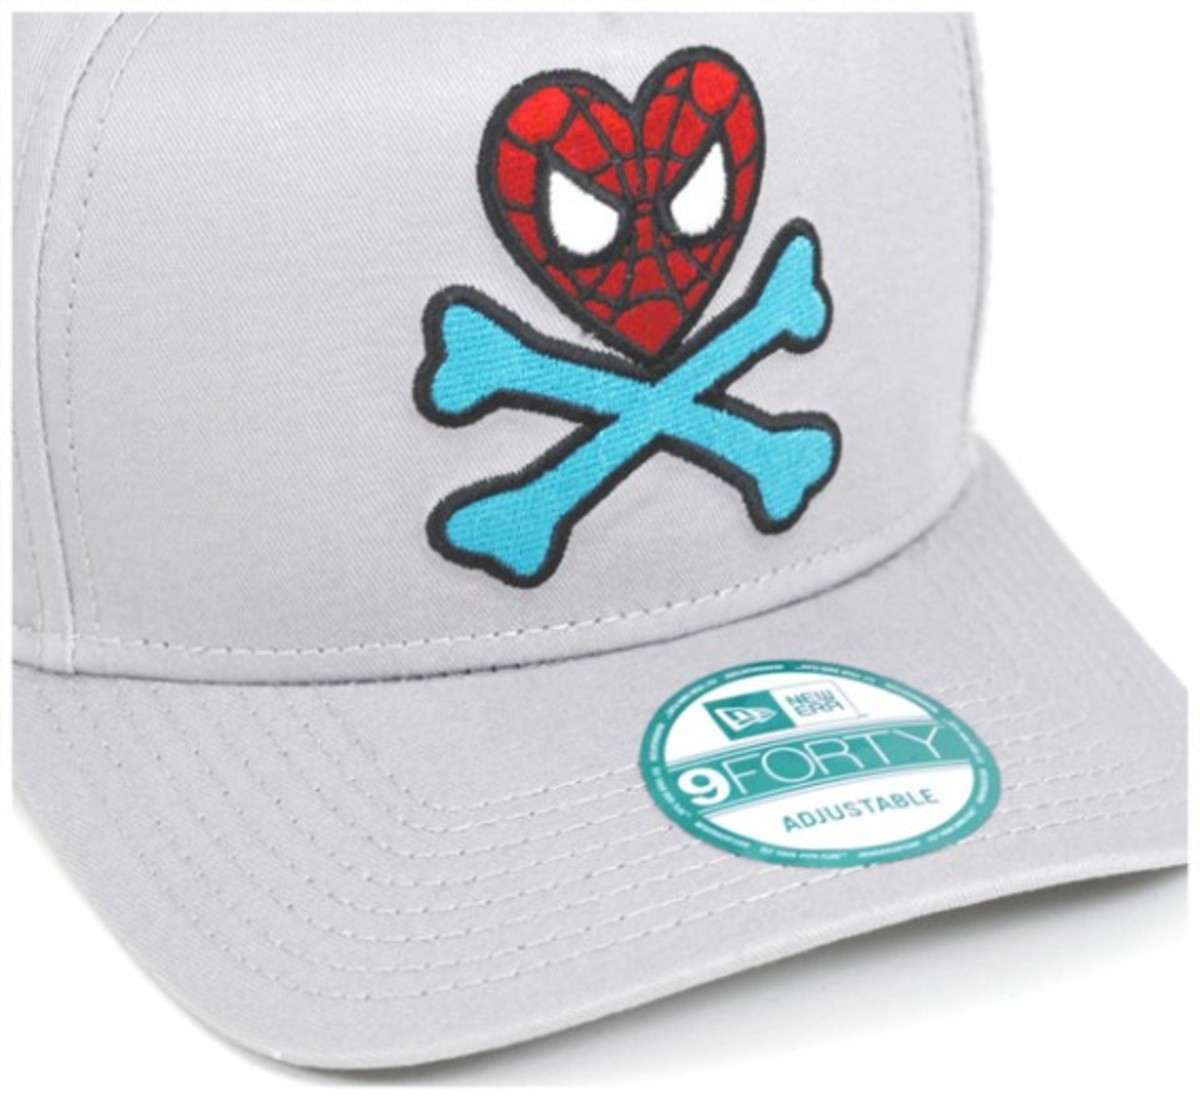 tokidoki-marvel-new-era-9fifty-snapback-cap-collection-06